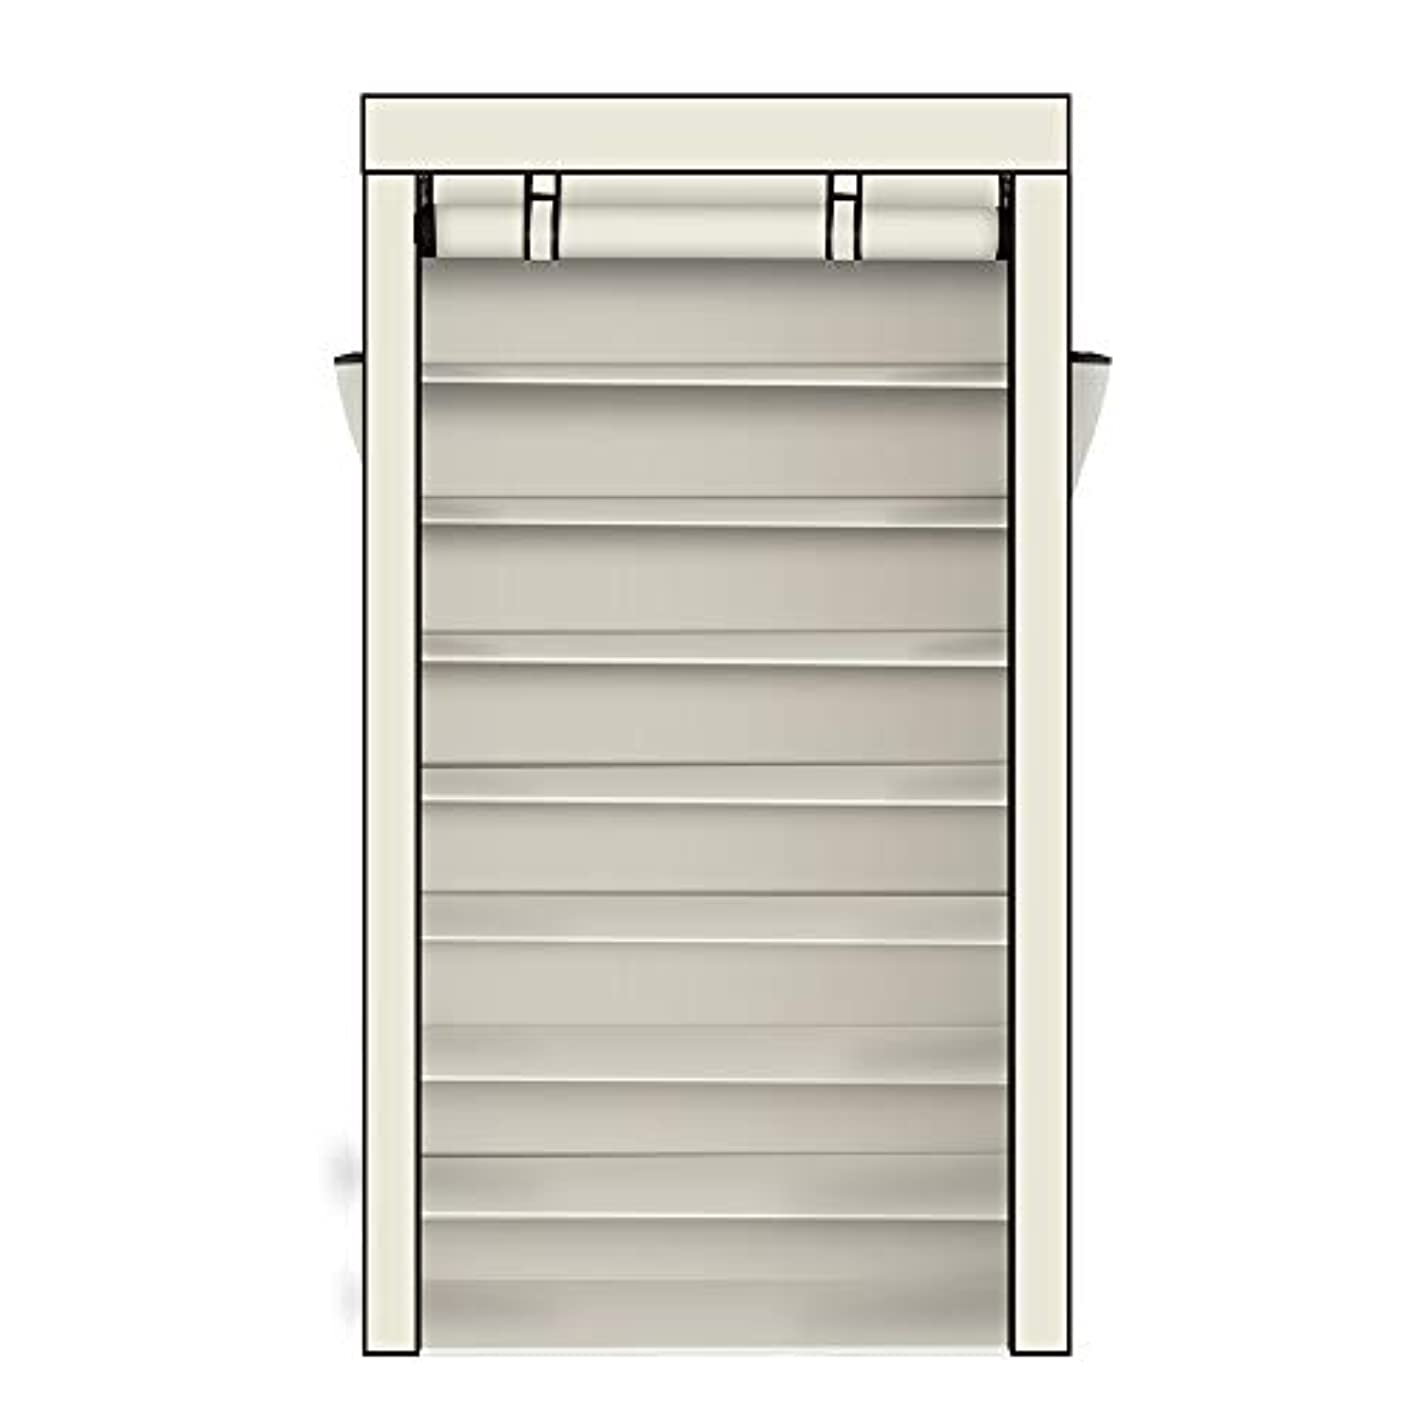 10 Tiers Shoe Rack Non-Woven Fabric with Dustproof Cover Closet 30 or 40 Pair Shoe Rack Tower Zippered Storage Cabinet Organizer (Beige)